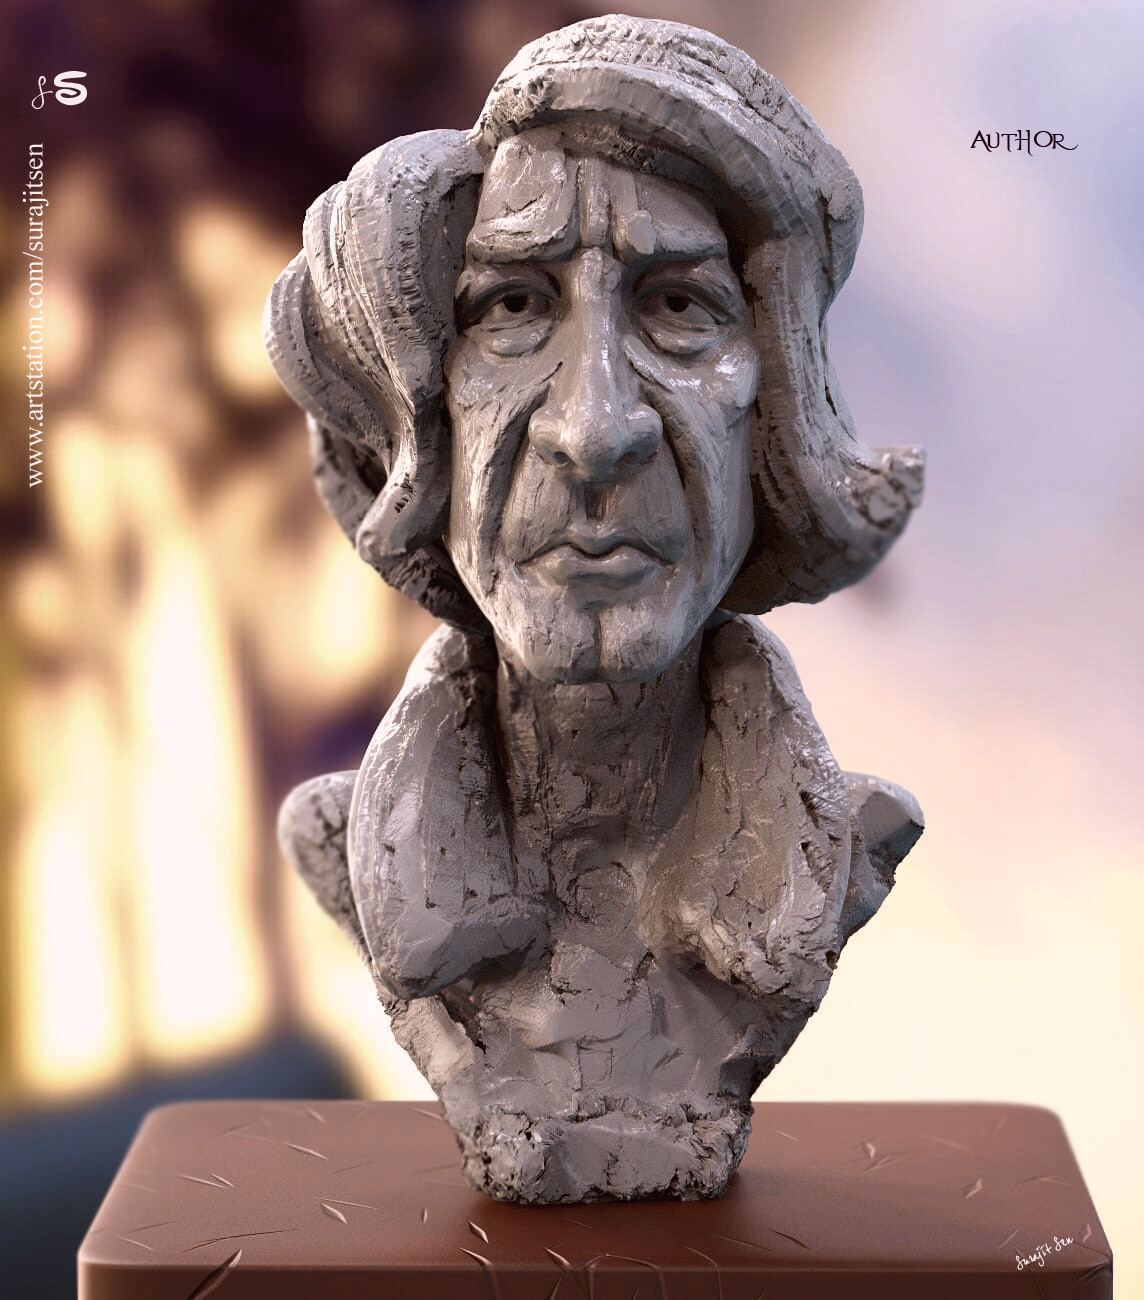 Author! One of my Digital Sculpture. Tried to make a form of my thoughts.